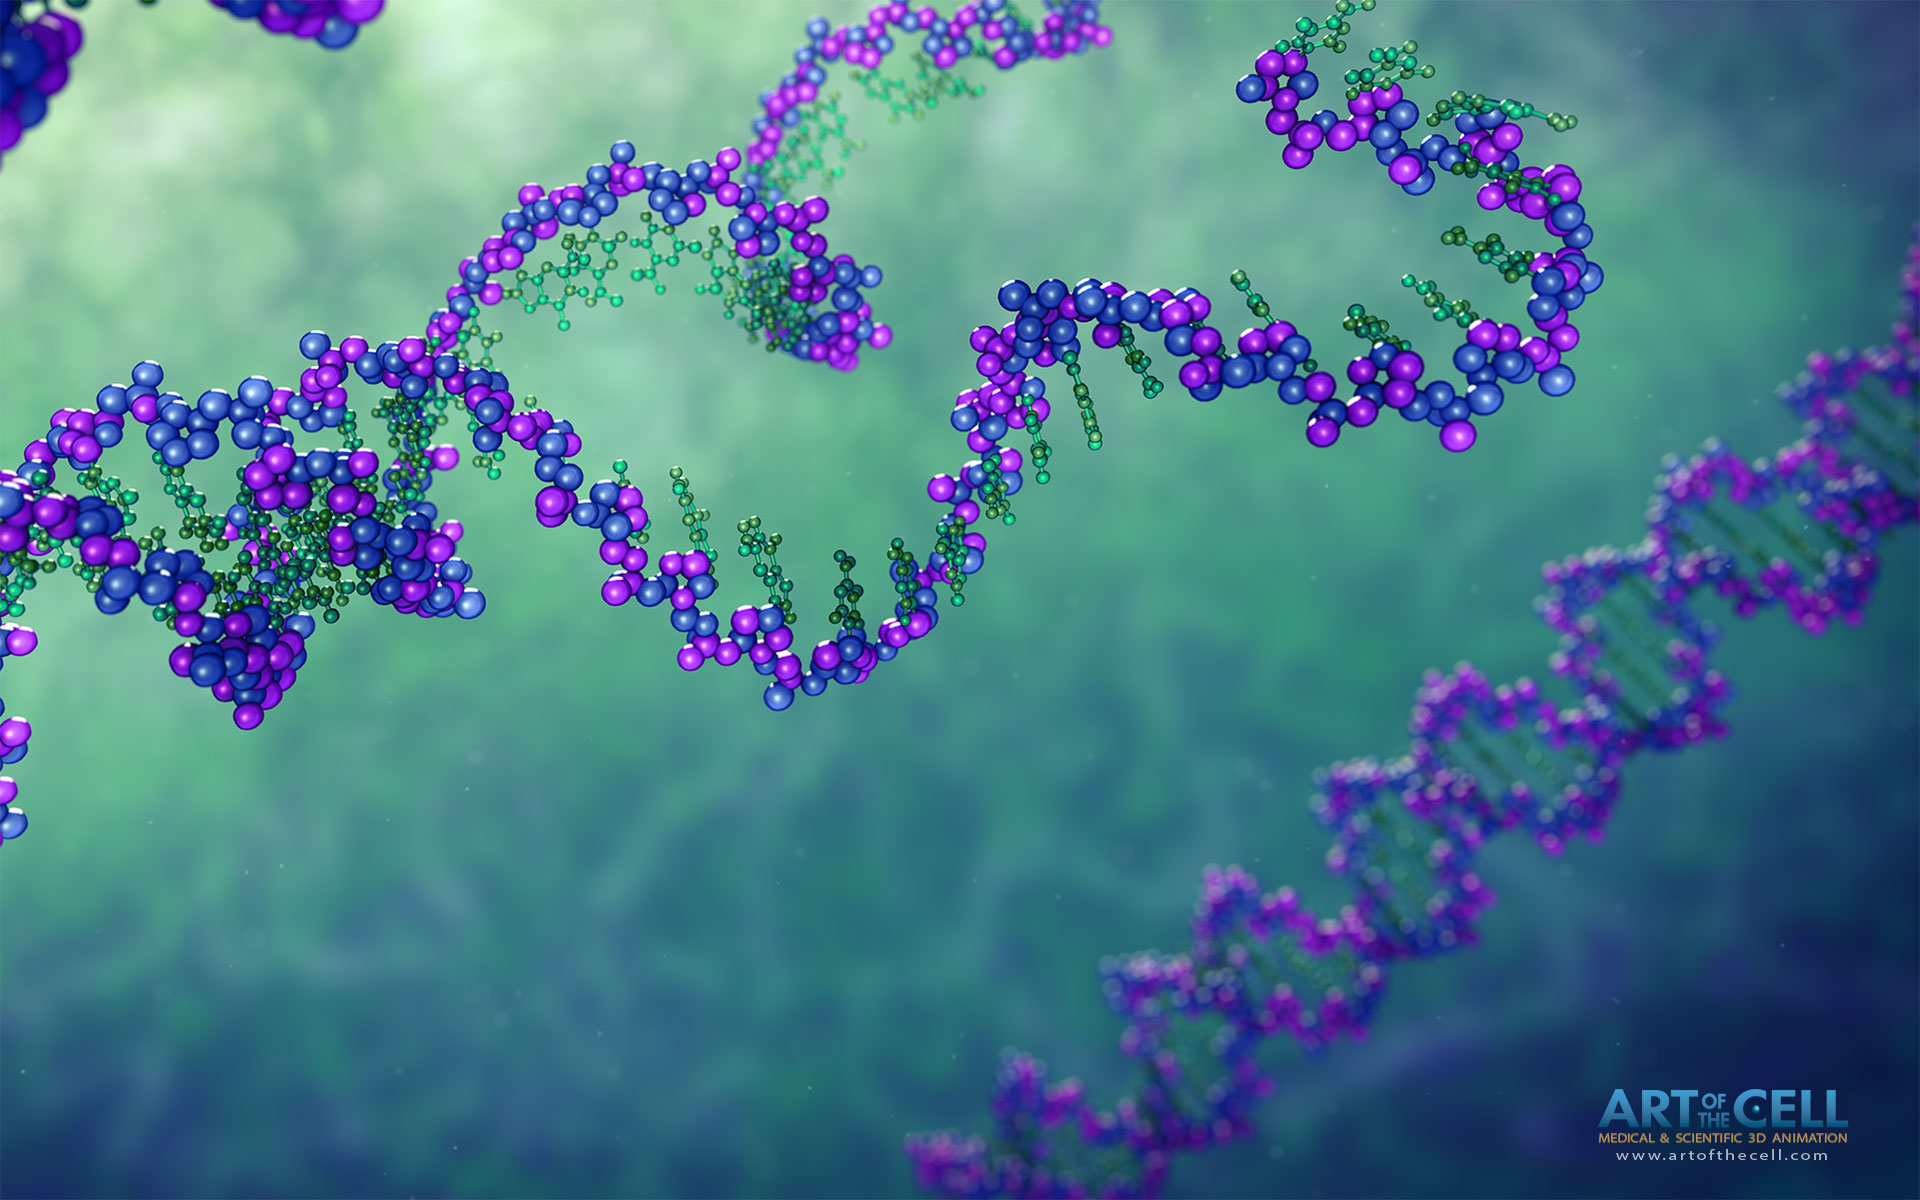 Dna Replication 3d These DNA structures come from